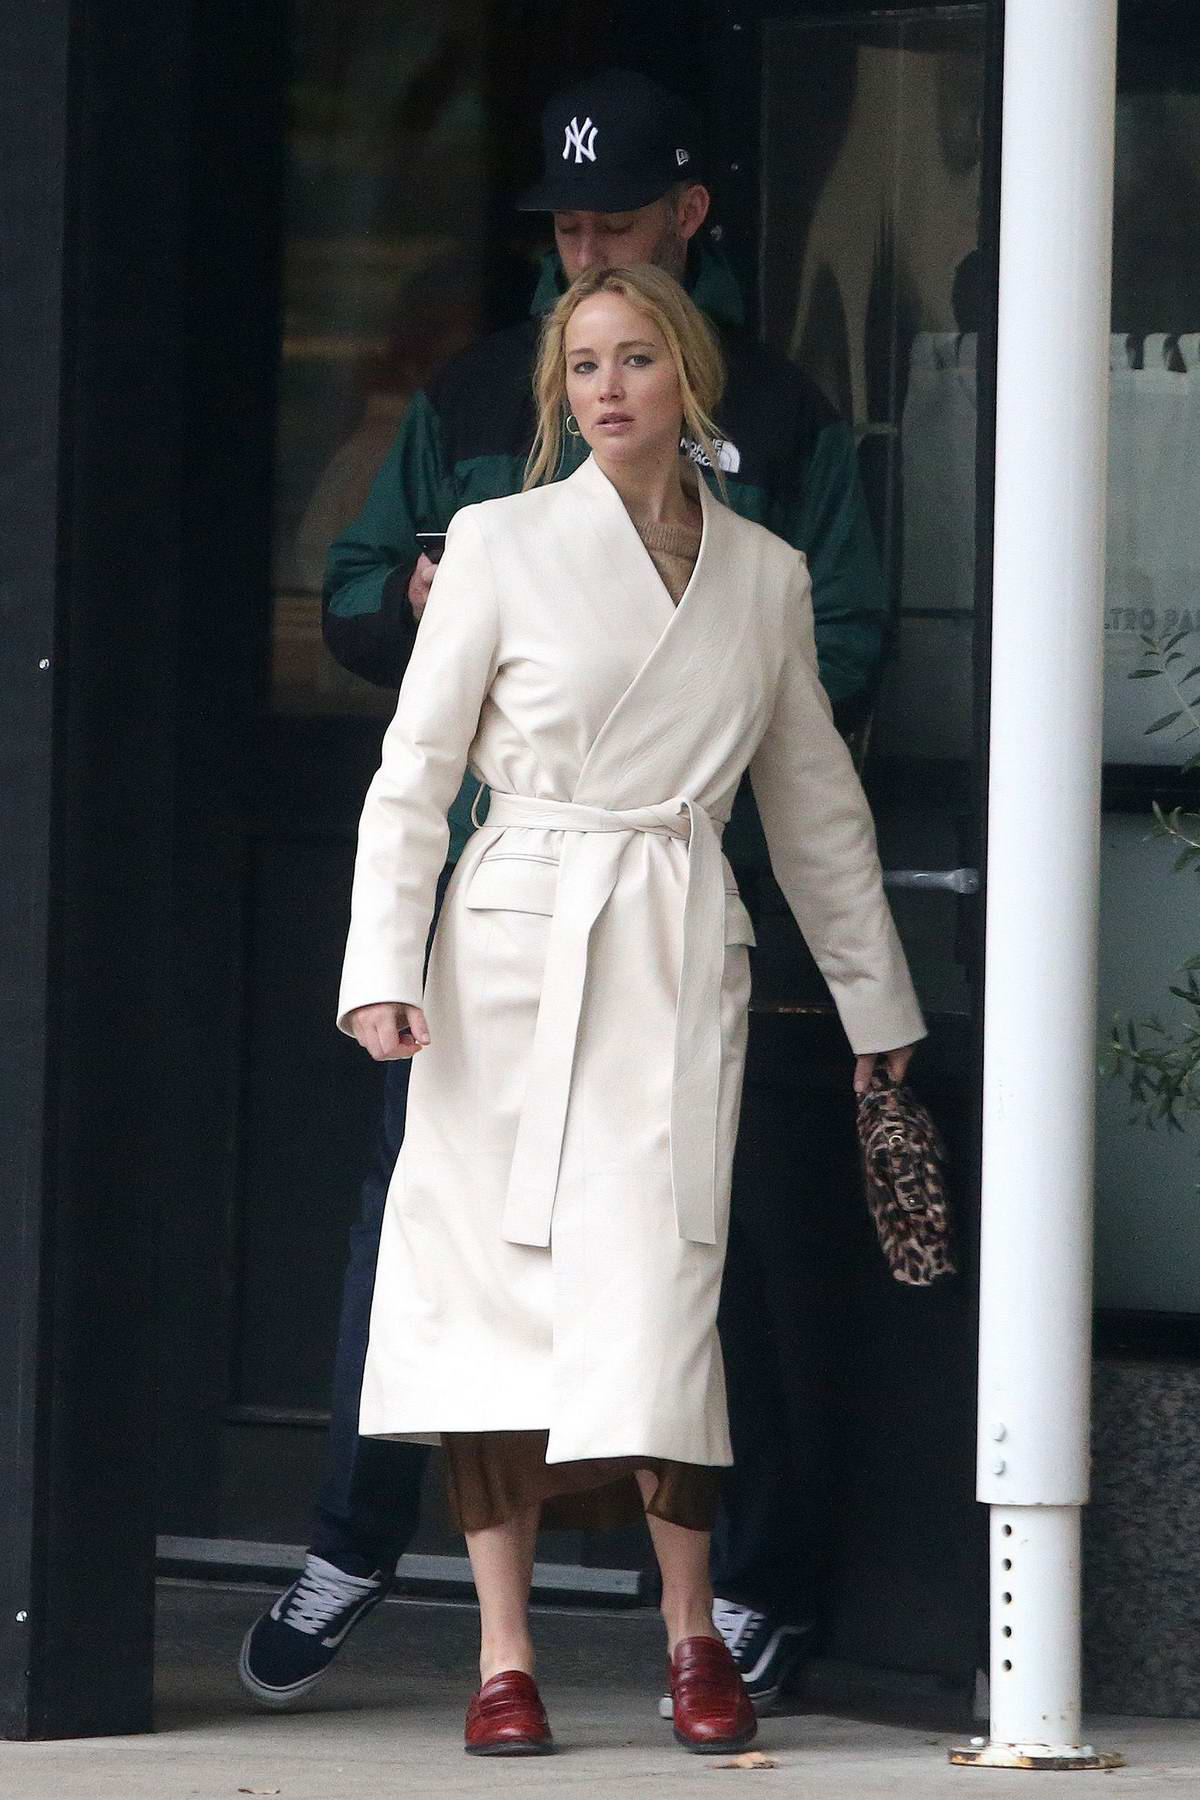 Jennifer Lawrence and Cooke Maroney check out an exhibit at MOMA then head to a restaurant in SoHo, New York City